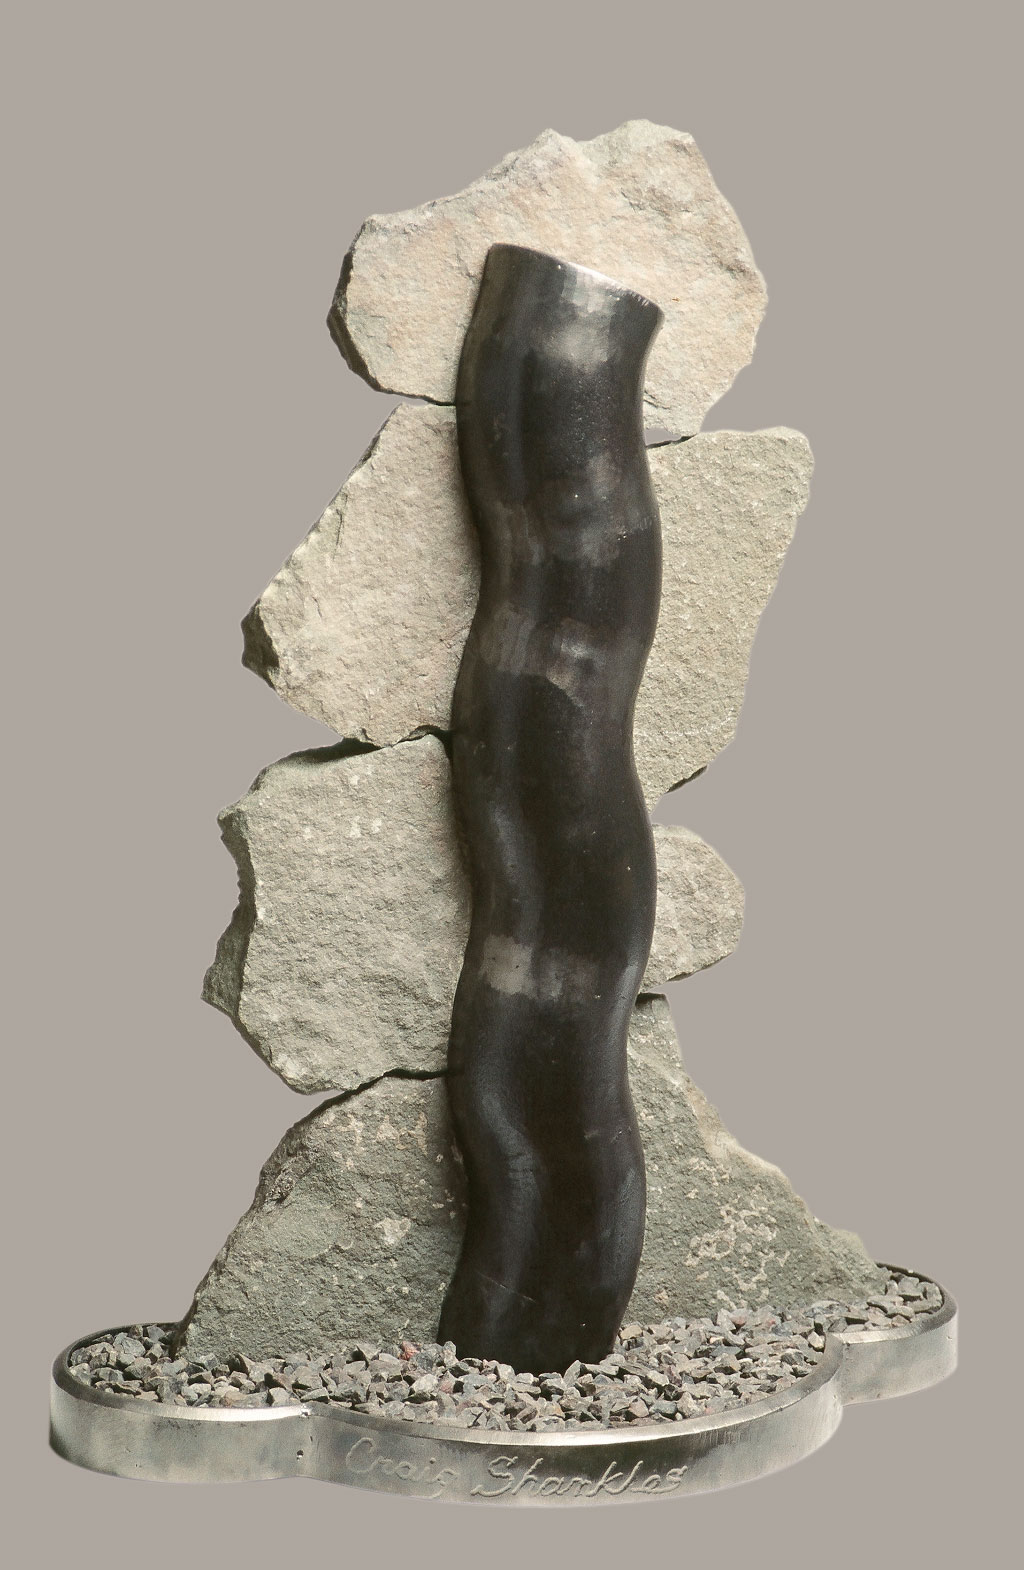 Sculpture Maquettes by Craig Shankles